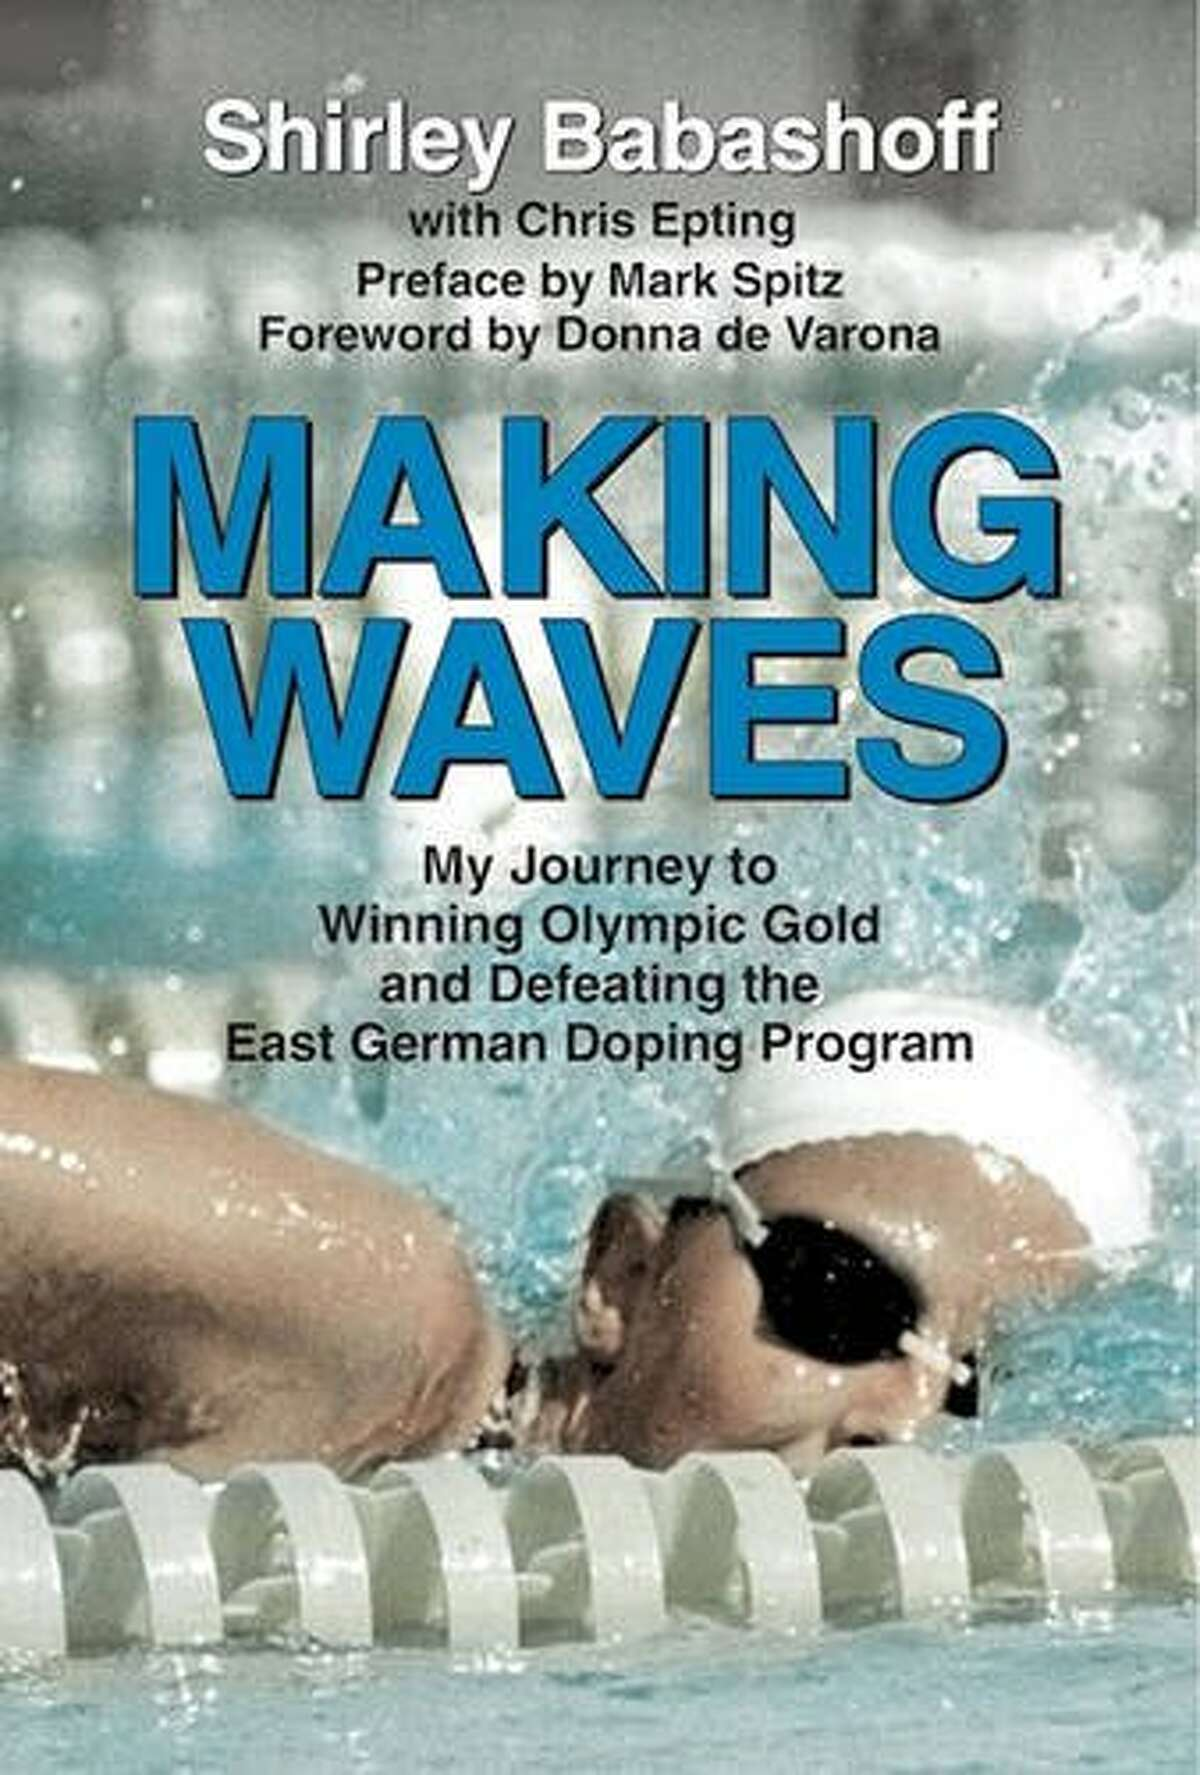 """Making Waves: My Journey to Winning Olympic Gold and Defeating the East German Doping Program By Shirley Babashoff with Chris Epting Swimmer Shirley Babashoff set 39 American records and 11 world records in her career, and in the 1976 Games she was poised to become """"the female Mark Spitz."""" But when she voiced her suspicion that the East German women's swimming team was doping, she was vilified and accused of poor sportsmanship. Forty years later, the gold medalist tells her version of the story."""